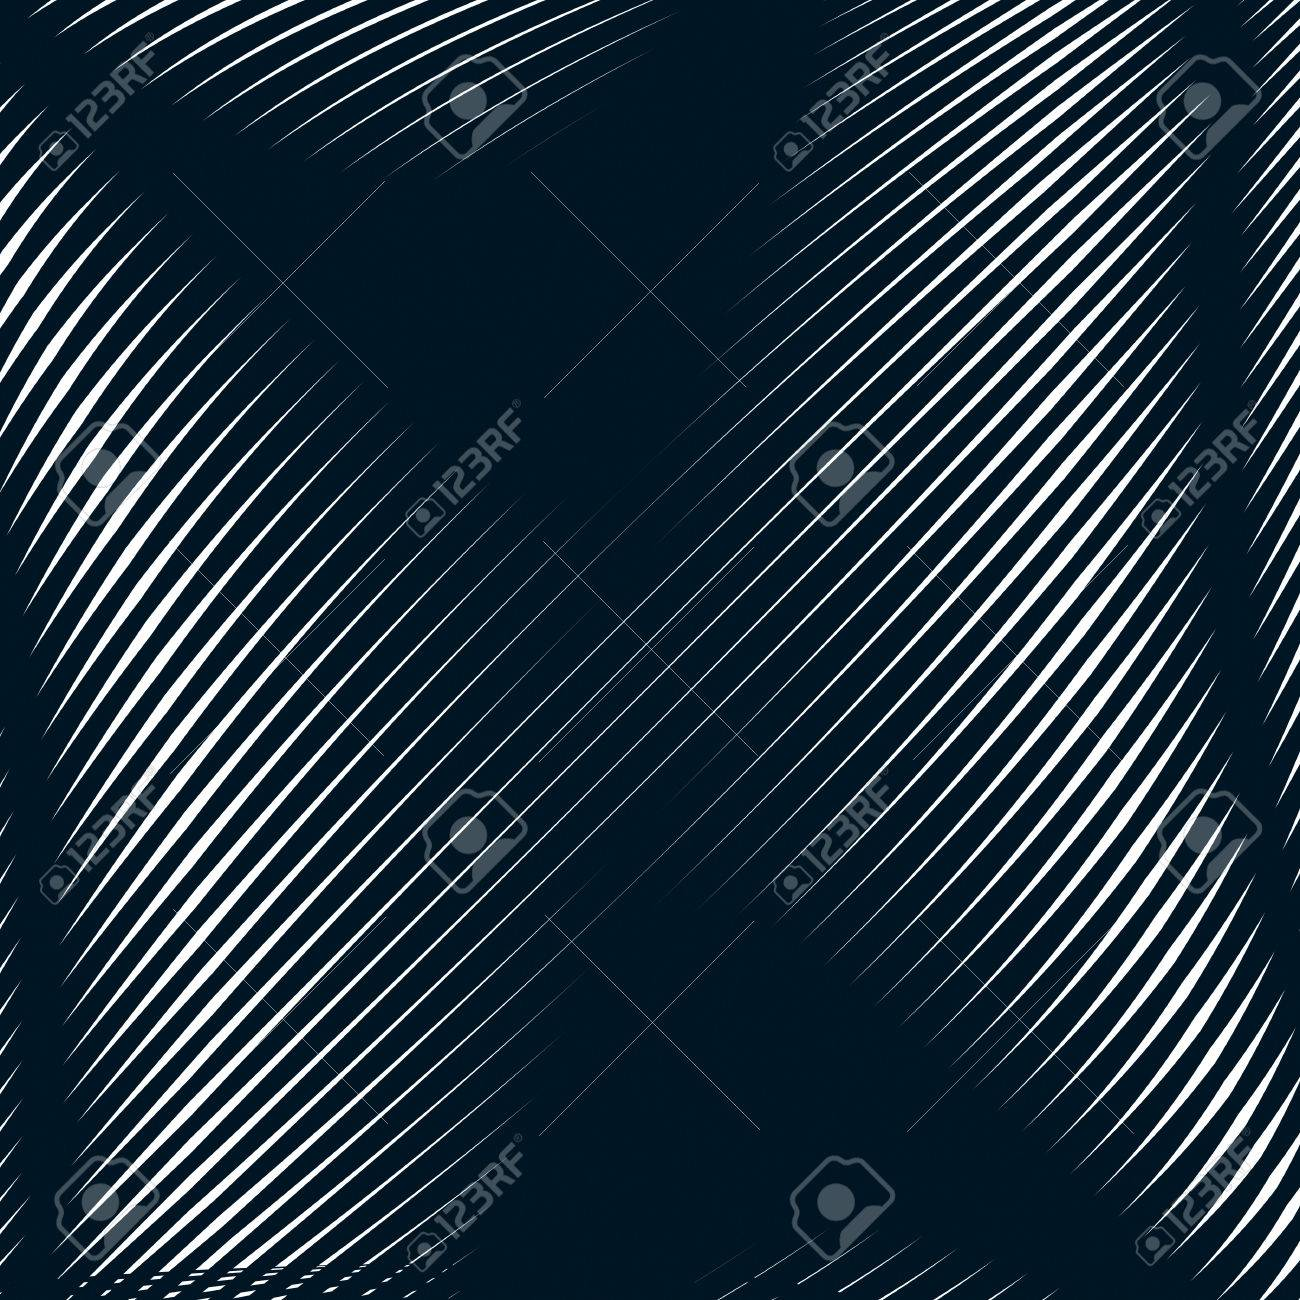 Abstract lined background, optical illusion style. Chaotic lines creating geometric pattern with visual effects. - 44791193